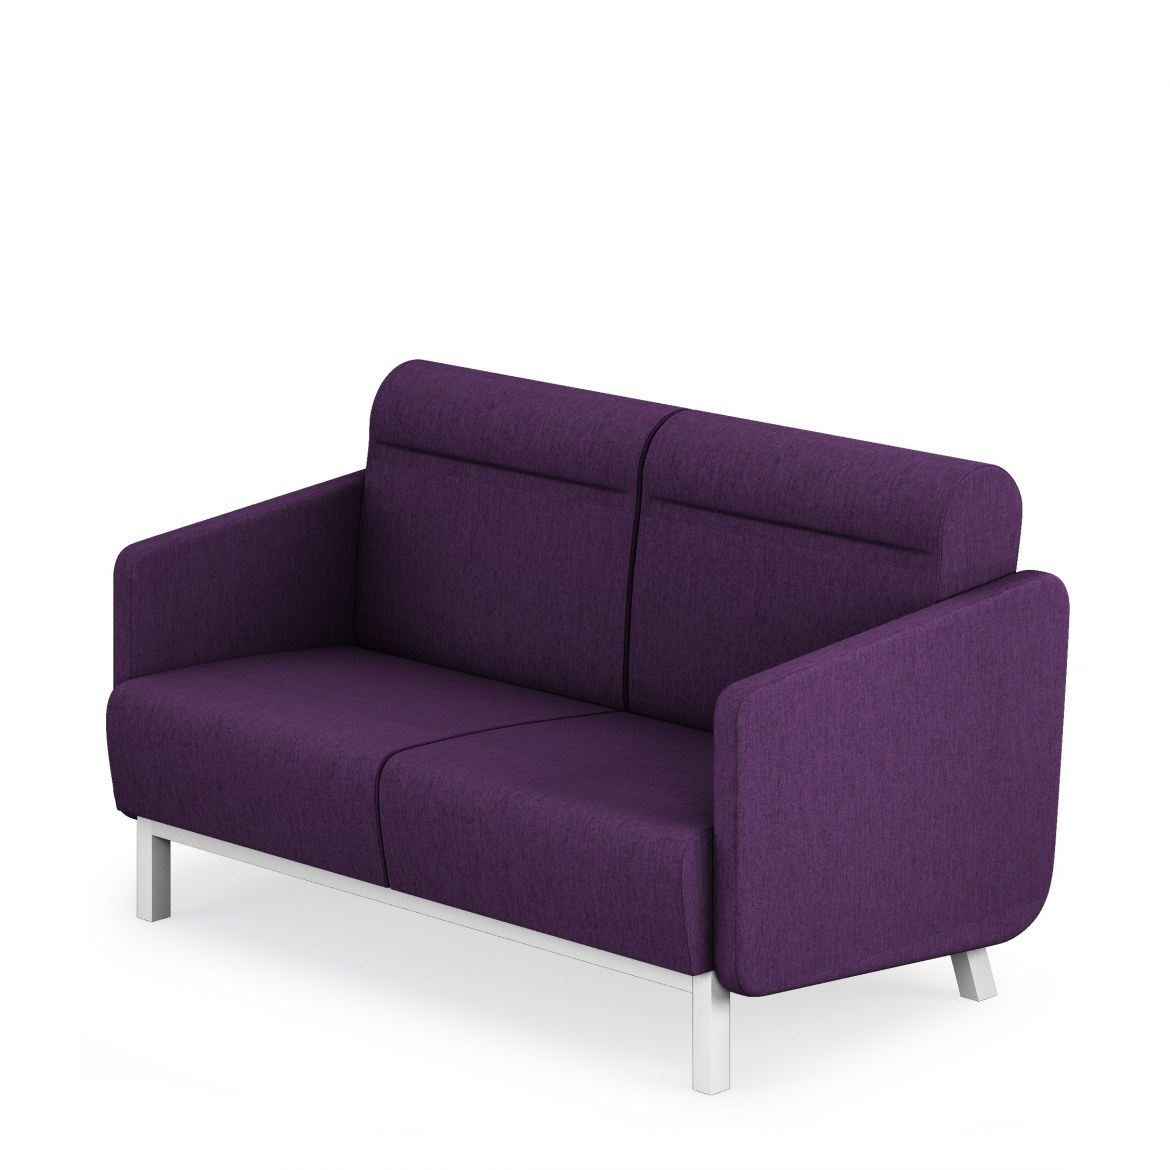 Mikomax Packman Sofa   PAC-MT-003 1